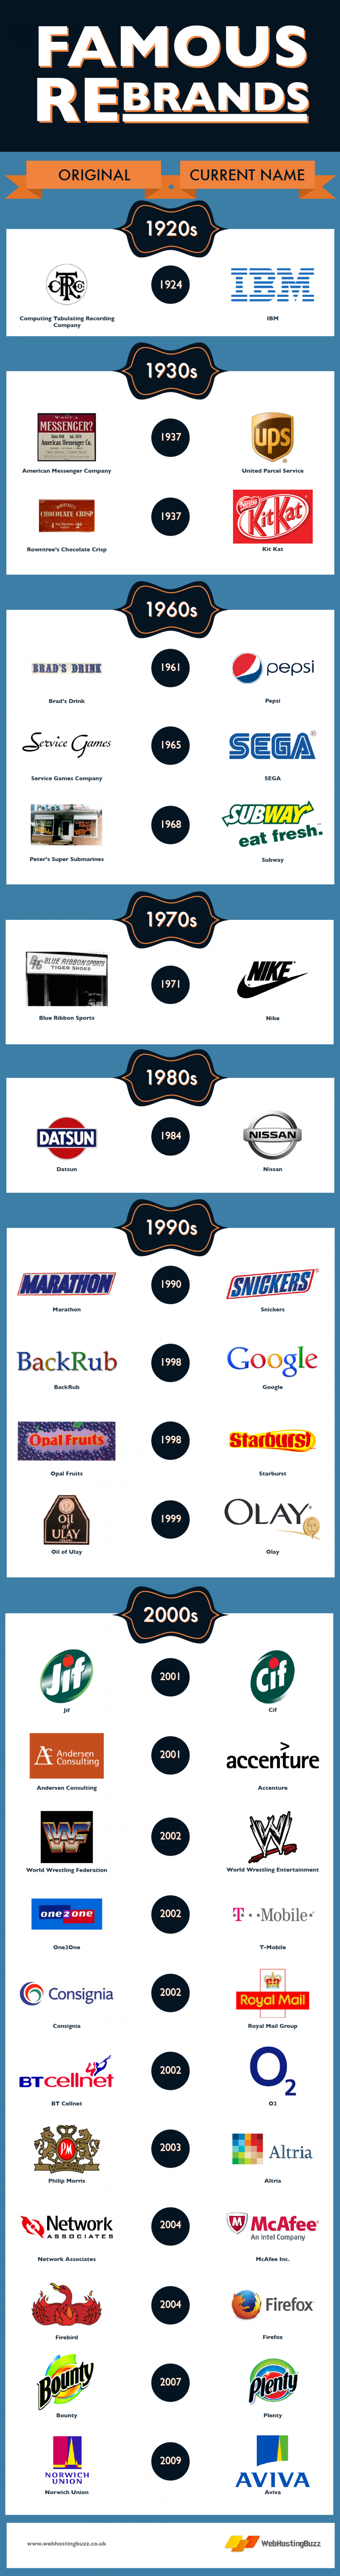 Famous Rebrands Infographic